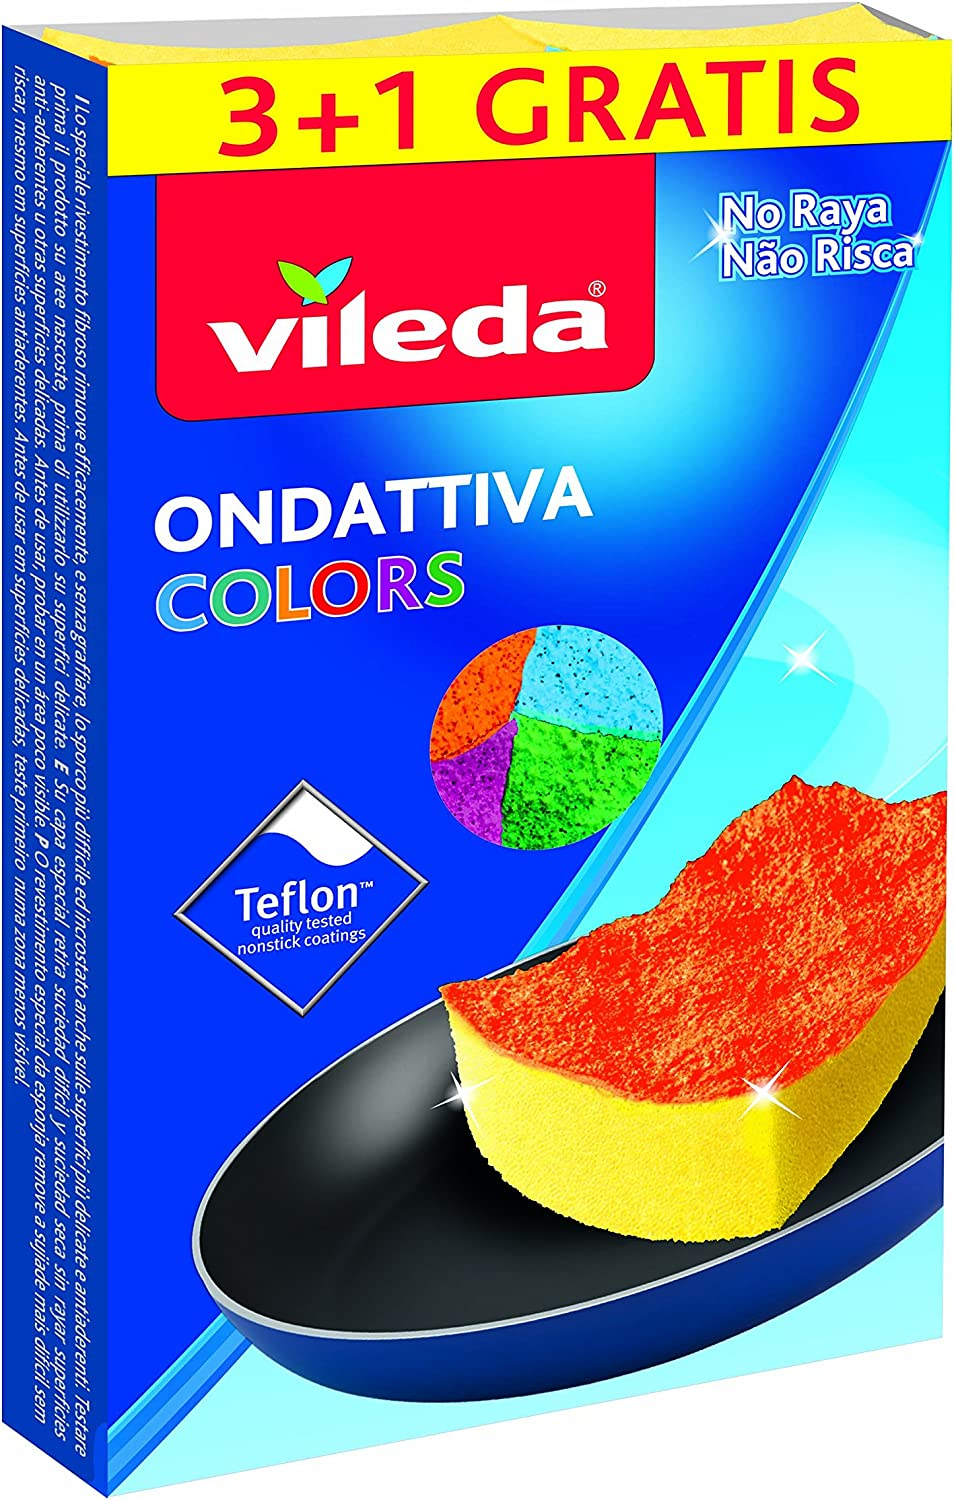 Amazon.com: Vileda Colors ondattiva MILLEUSI 3 + 1, Esponja ...